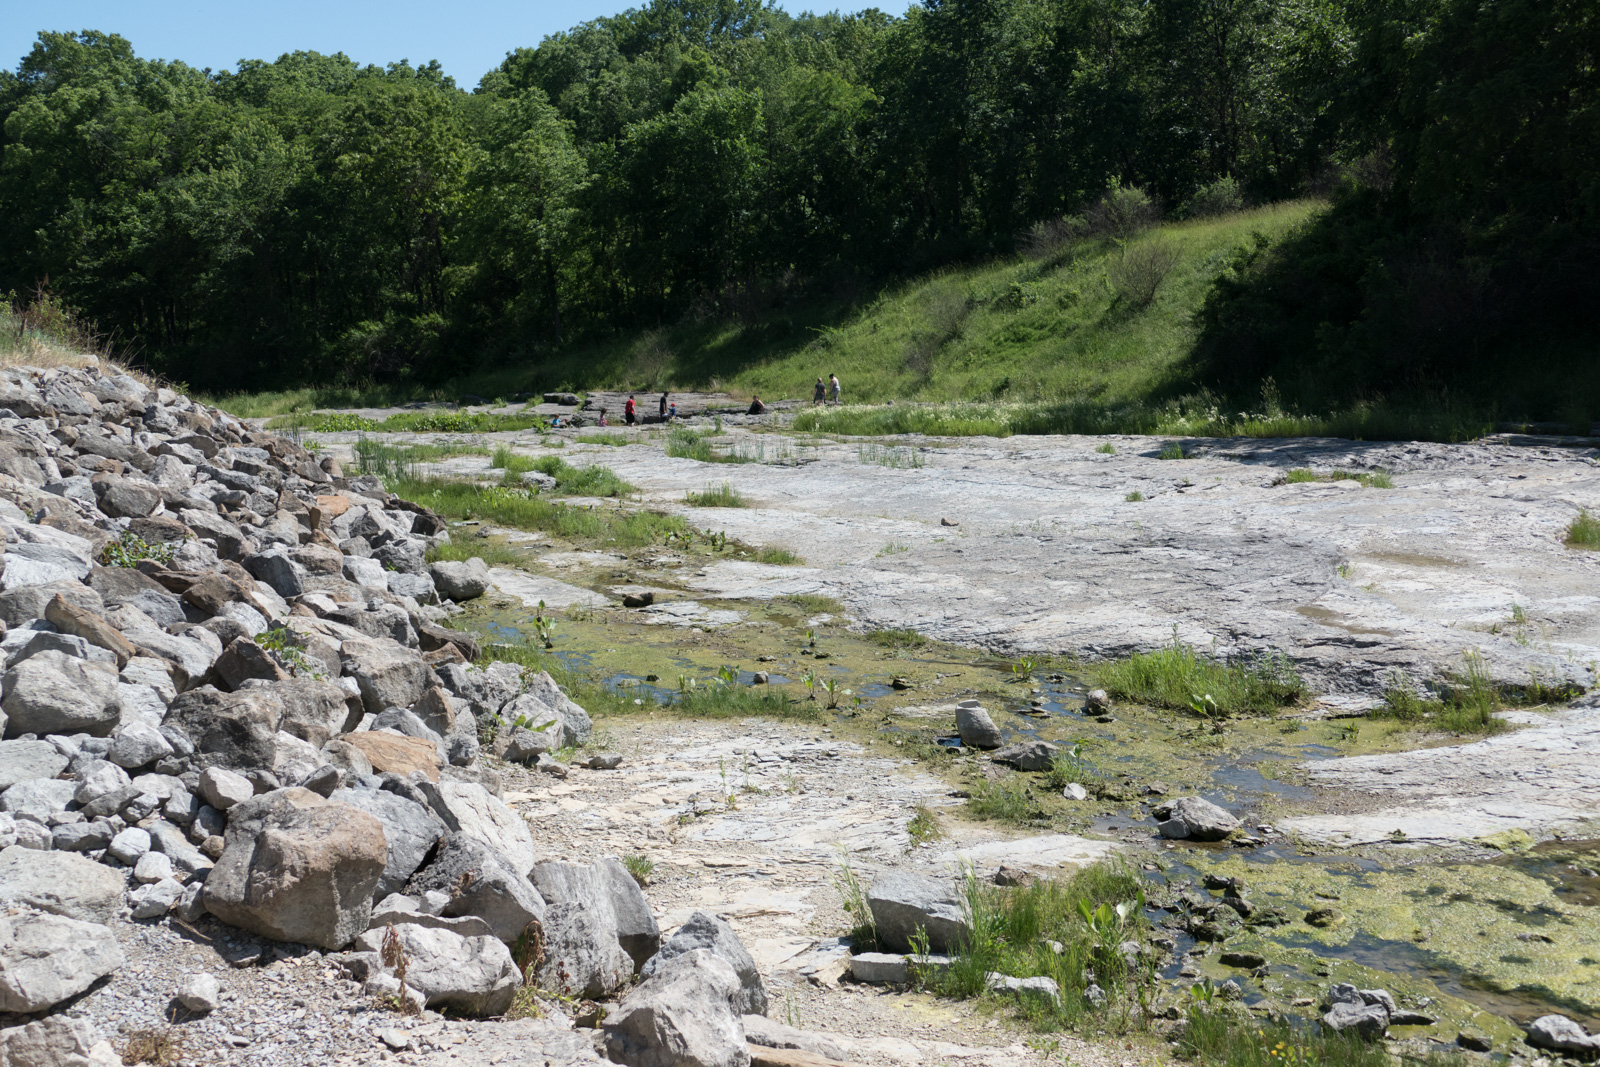 This is what remains of the campground following the two floods which moved huge rocks and sediment that revealed the fossils in the old sea bed.